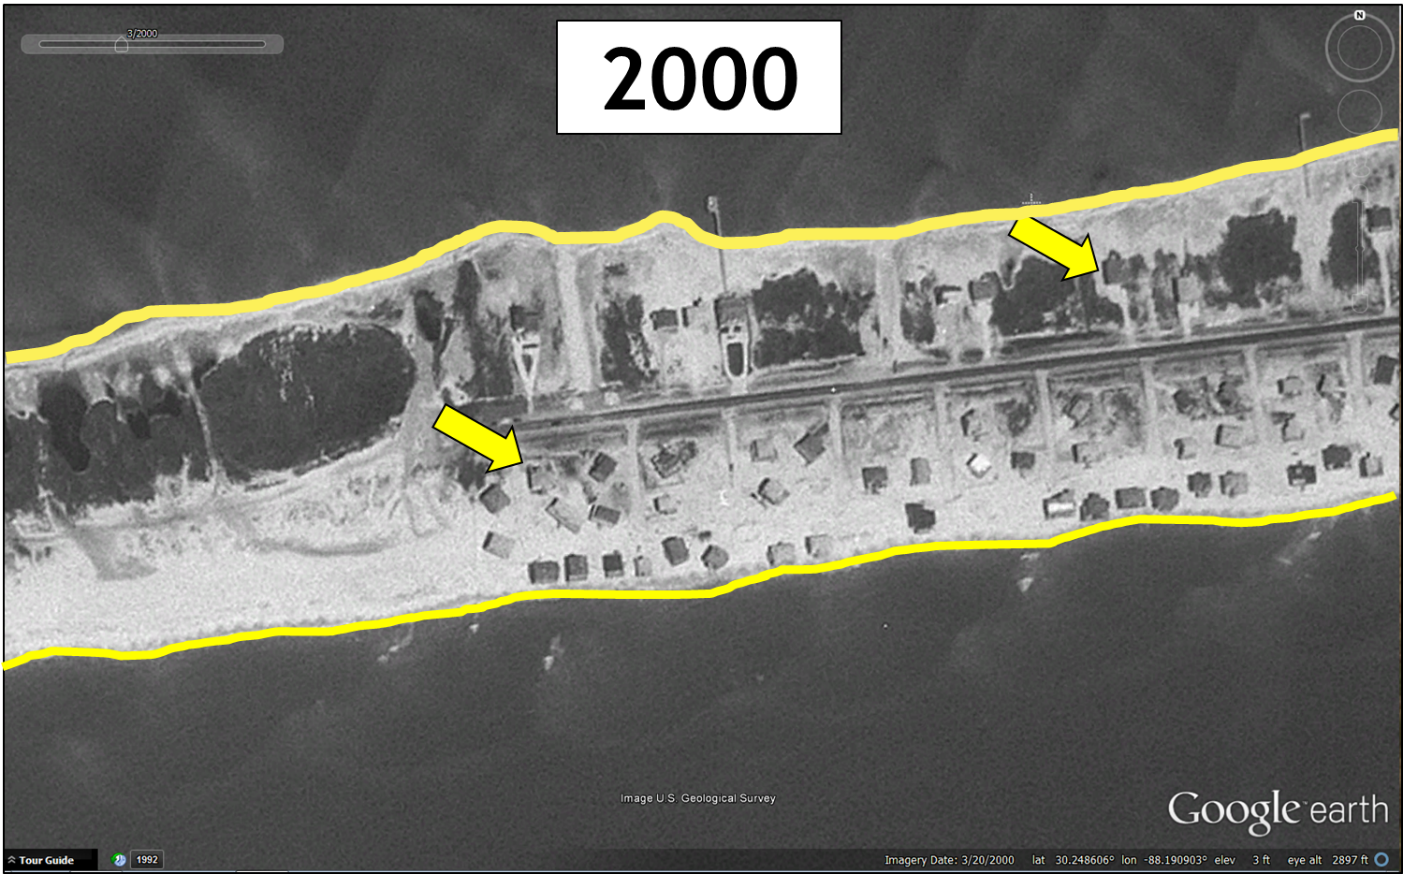 West end of Dauphin Island, Alabama, in 2000. Yellow outline is the outline of the main land mass in 2000. The yellow arrows are pointing to houses that can be used as benchmarks for the next figure. Imagery from Google Earth.